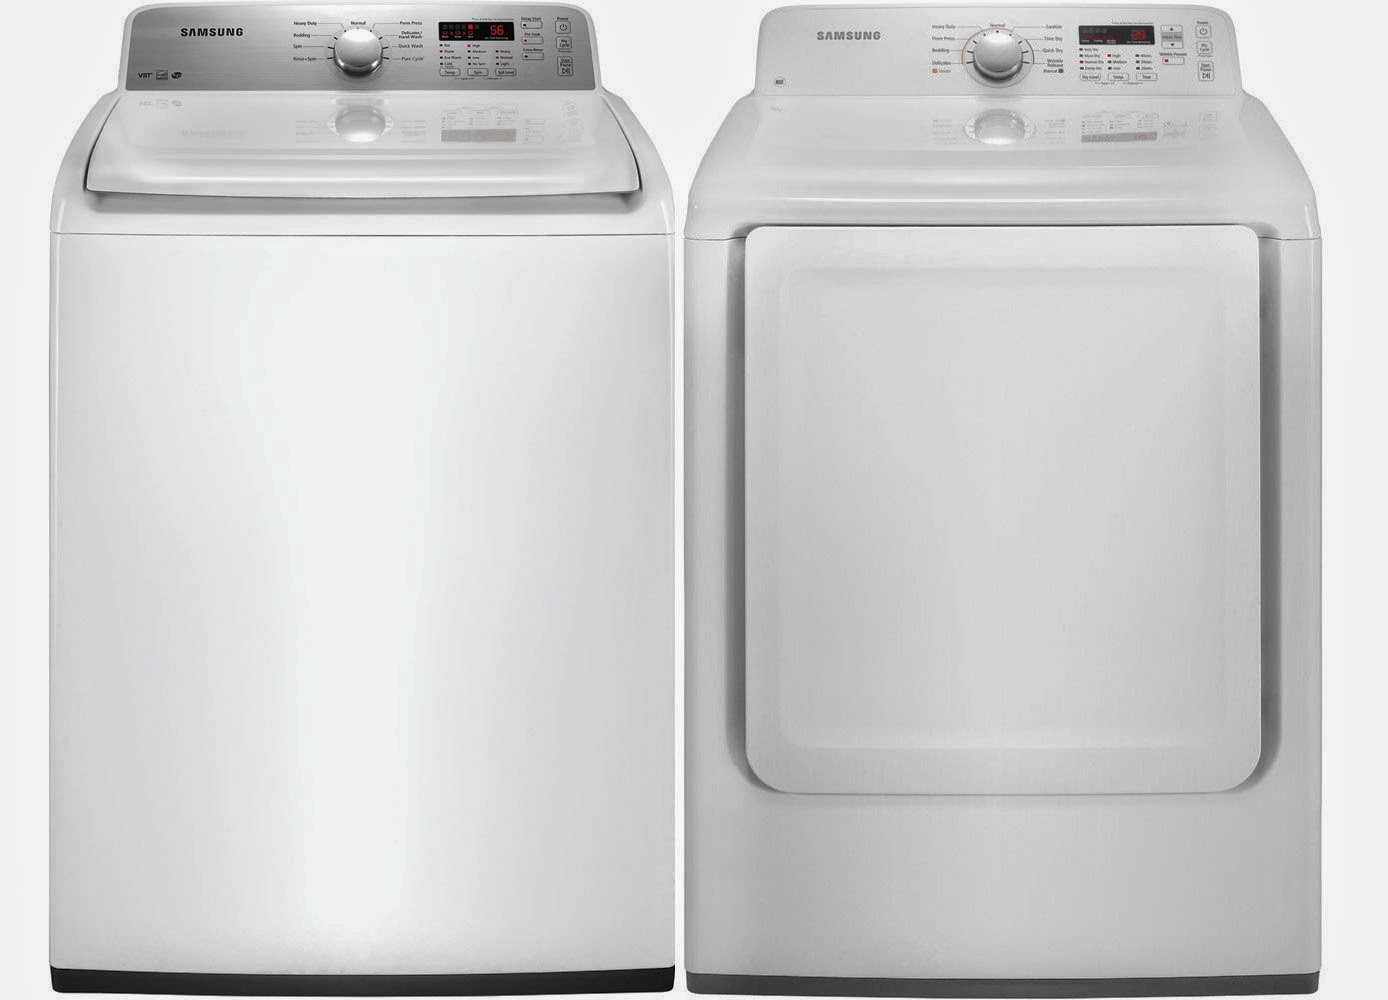 The best top load washer and dryer combo 2015 - Samsung Washer Dryer